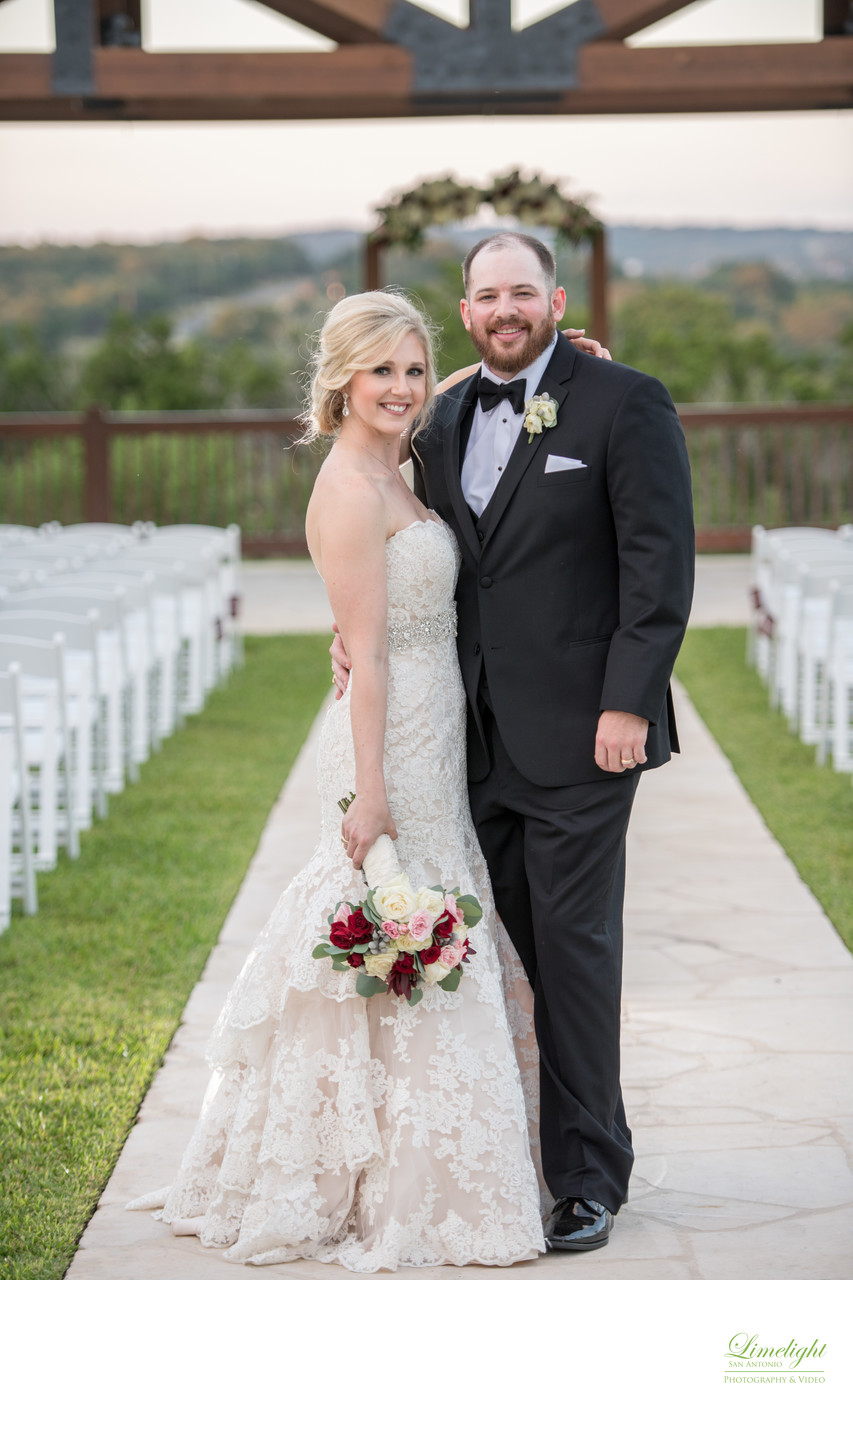 Wedding at The Milestone |New Braunfels